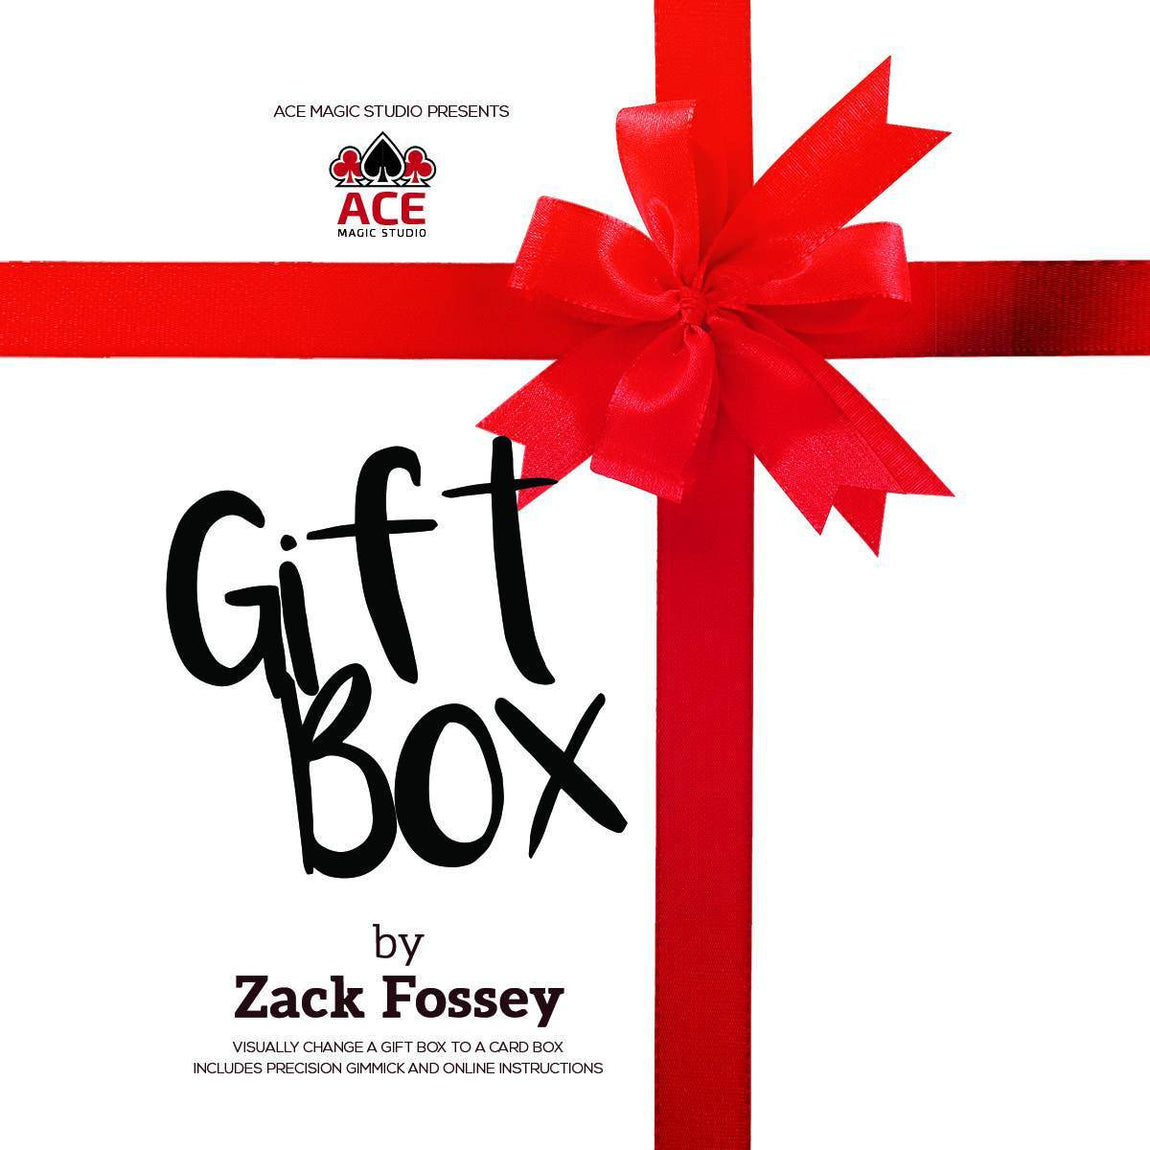 Gift Box by Zack Fossey